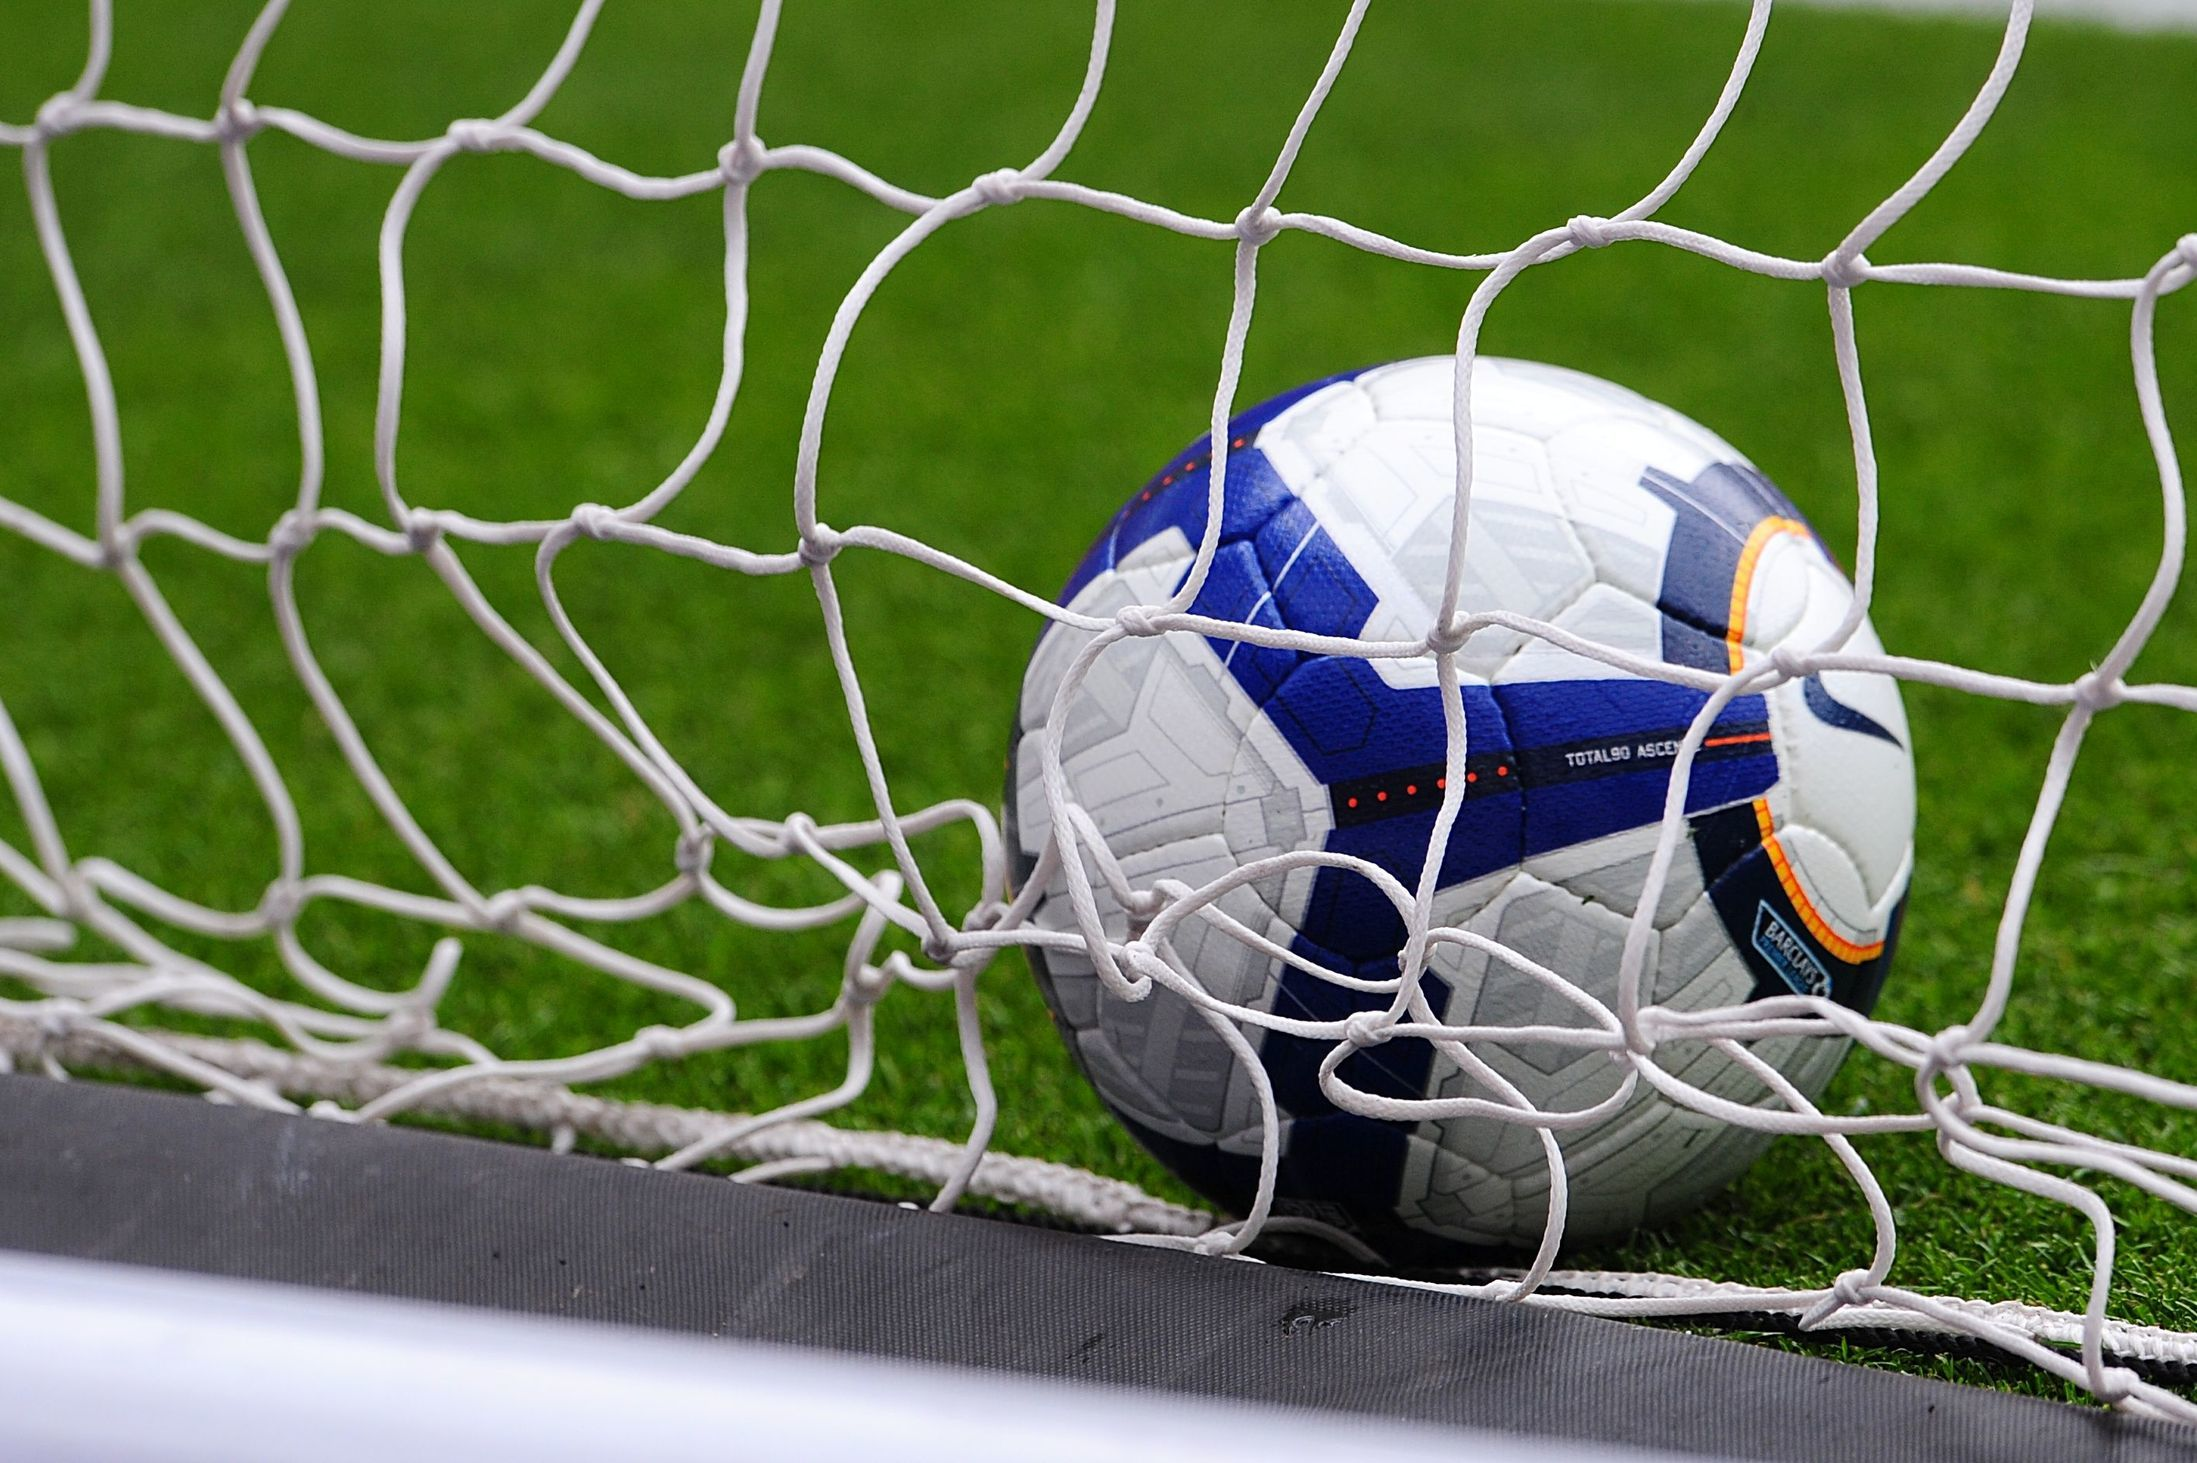 Marques strike seal win for Guiseley Academy